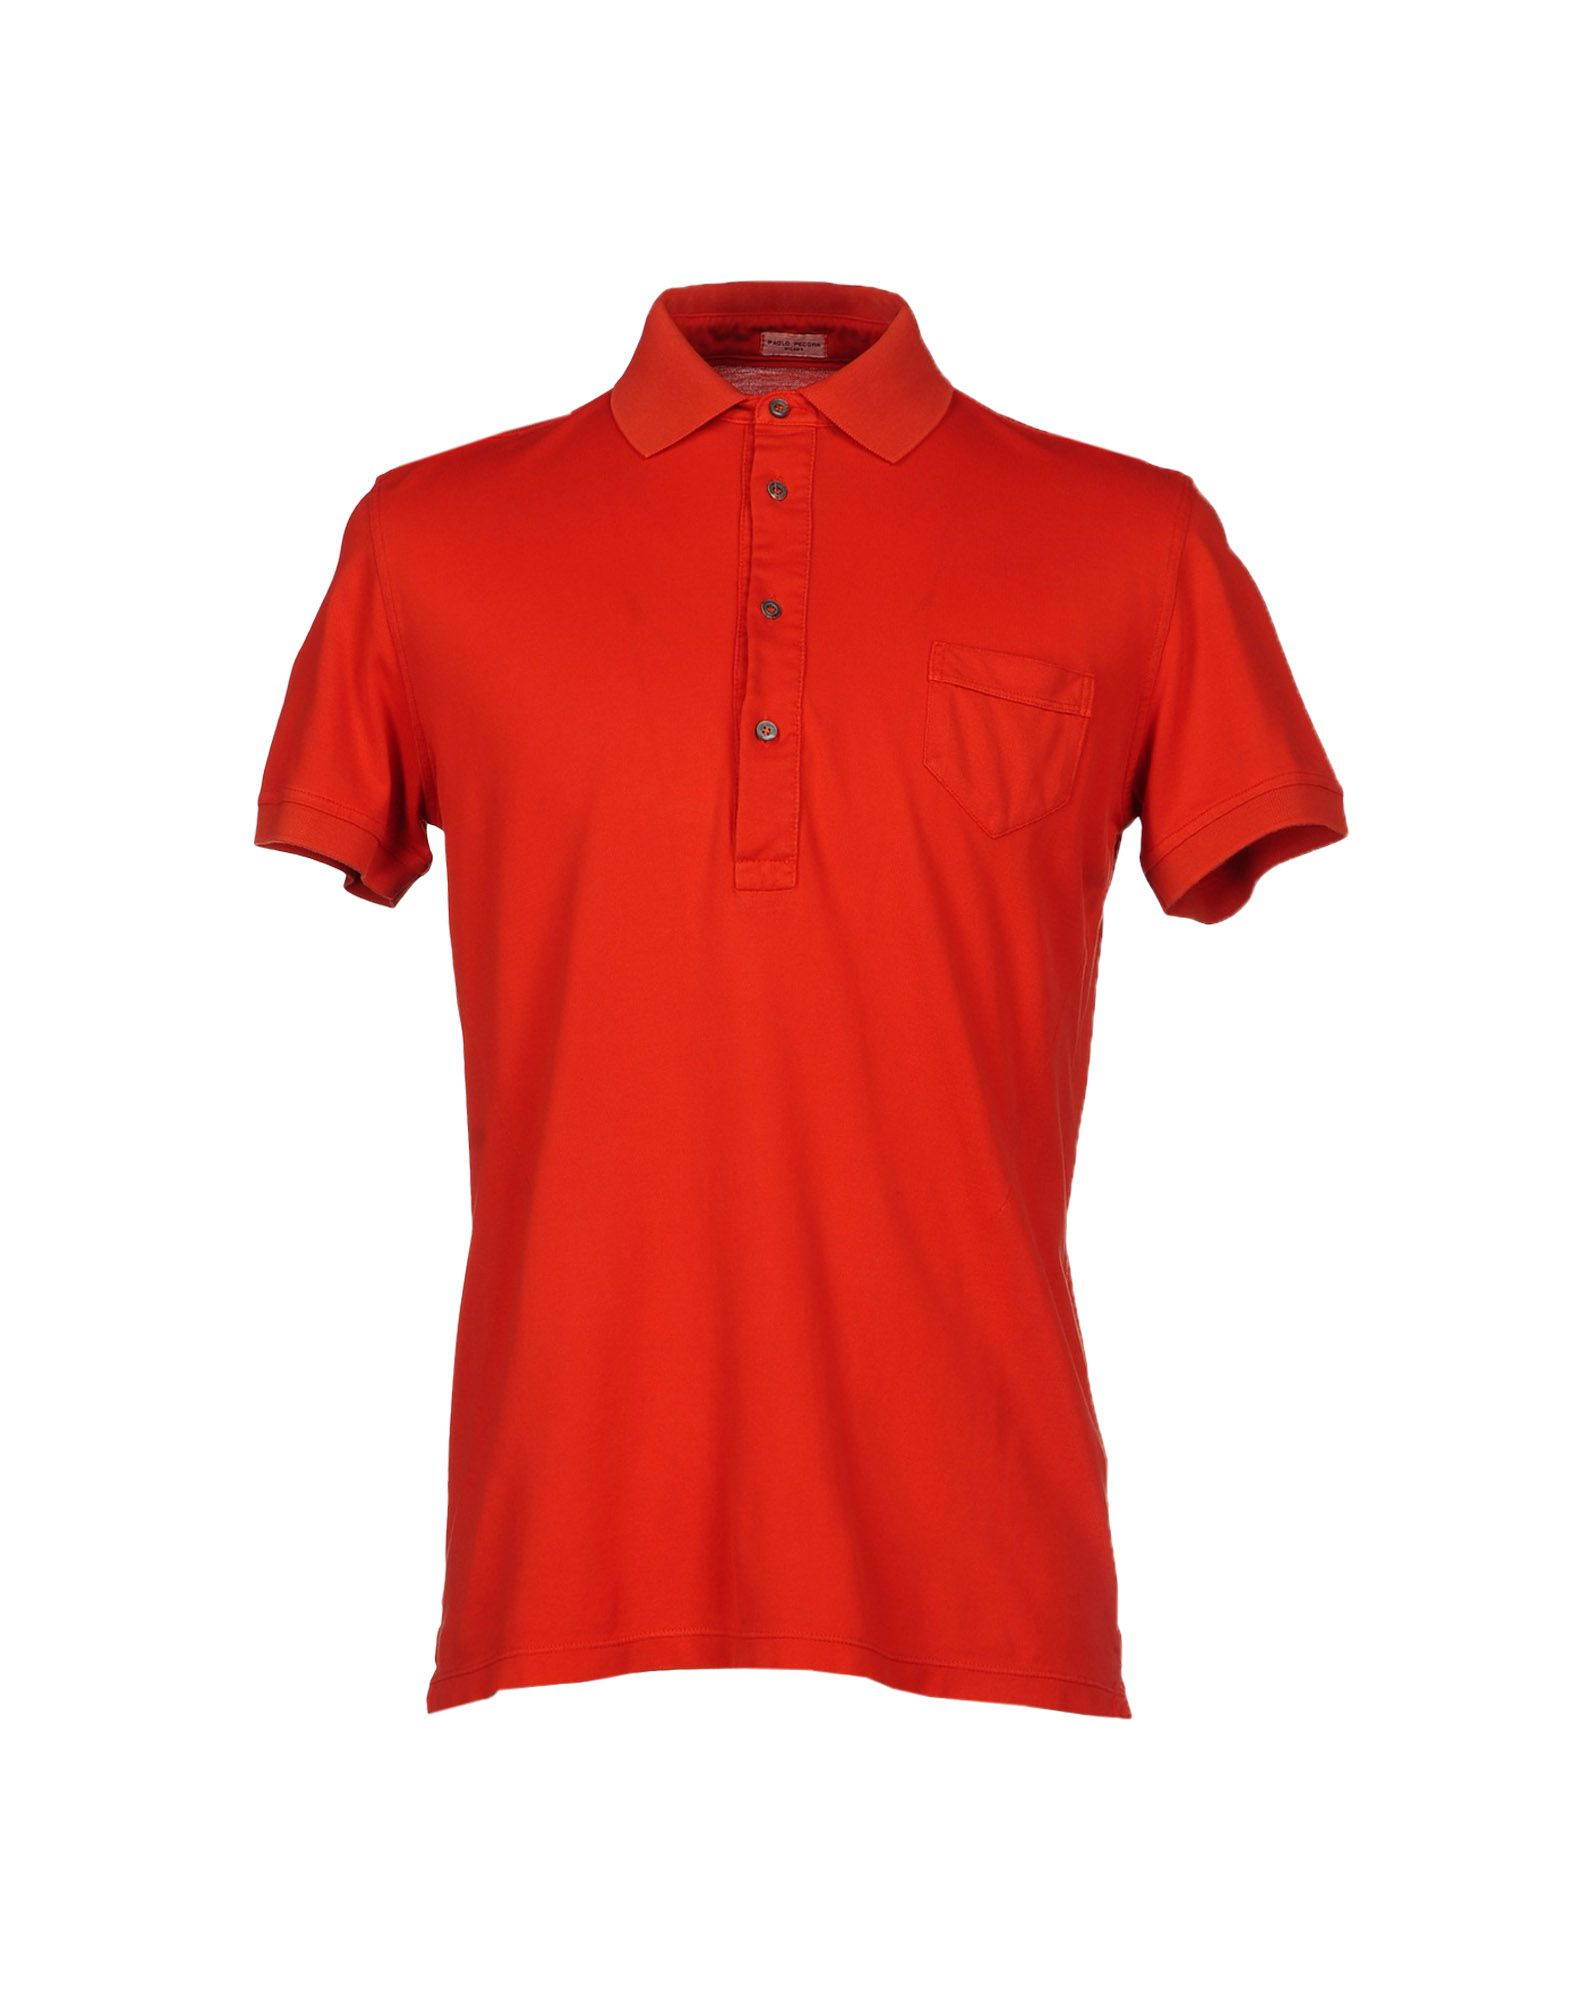 Lyst paolo pecora polo shirt in orange for men for Mens orange polo shirt